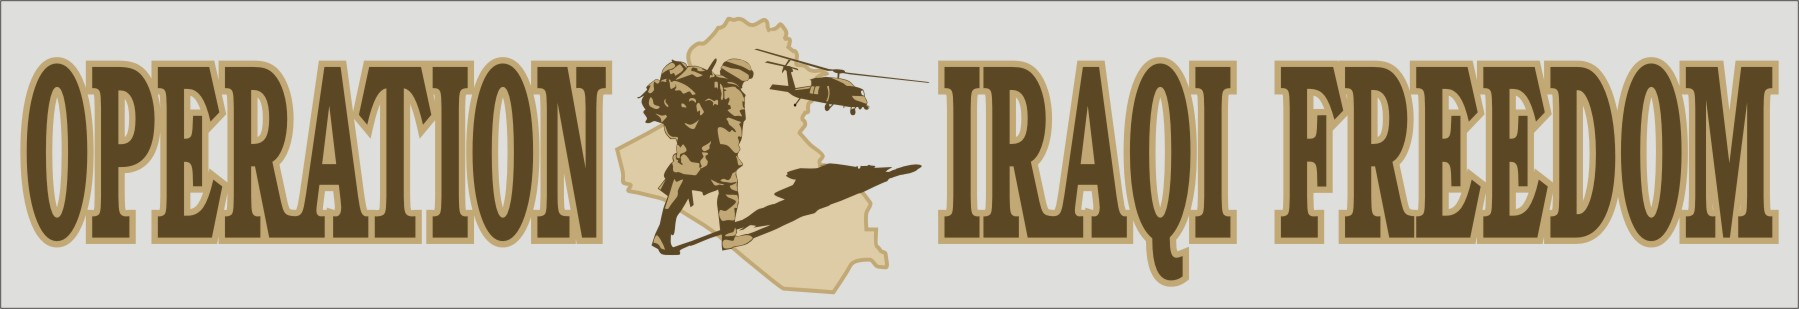 Oper.Iraqi Freedom Window Strip